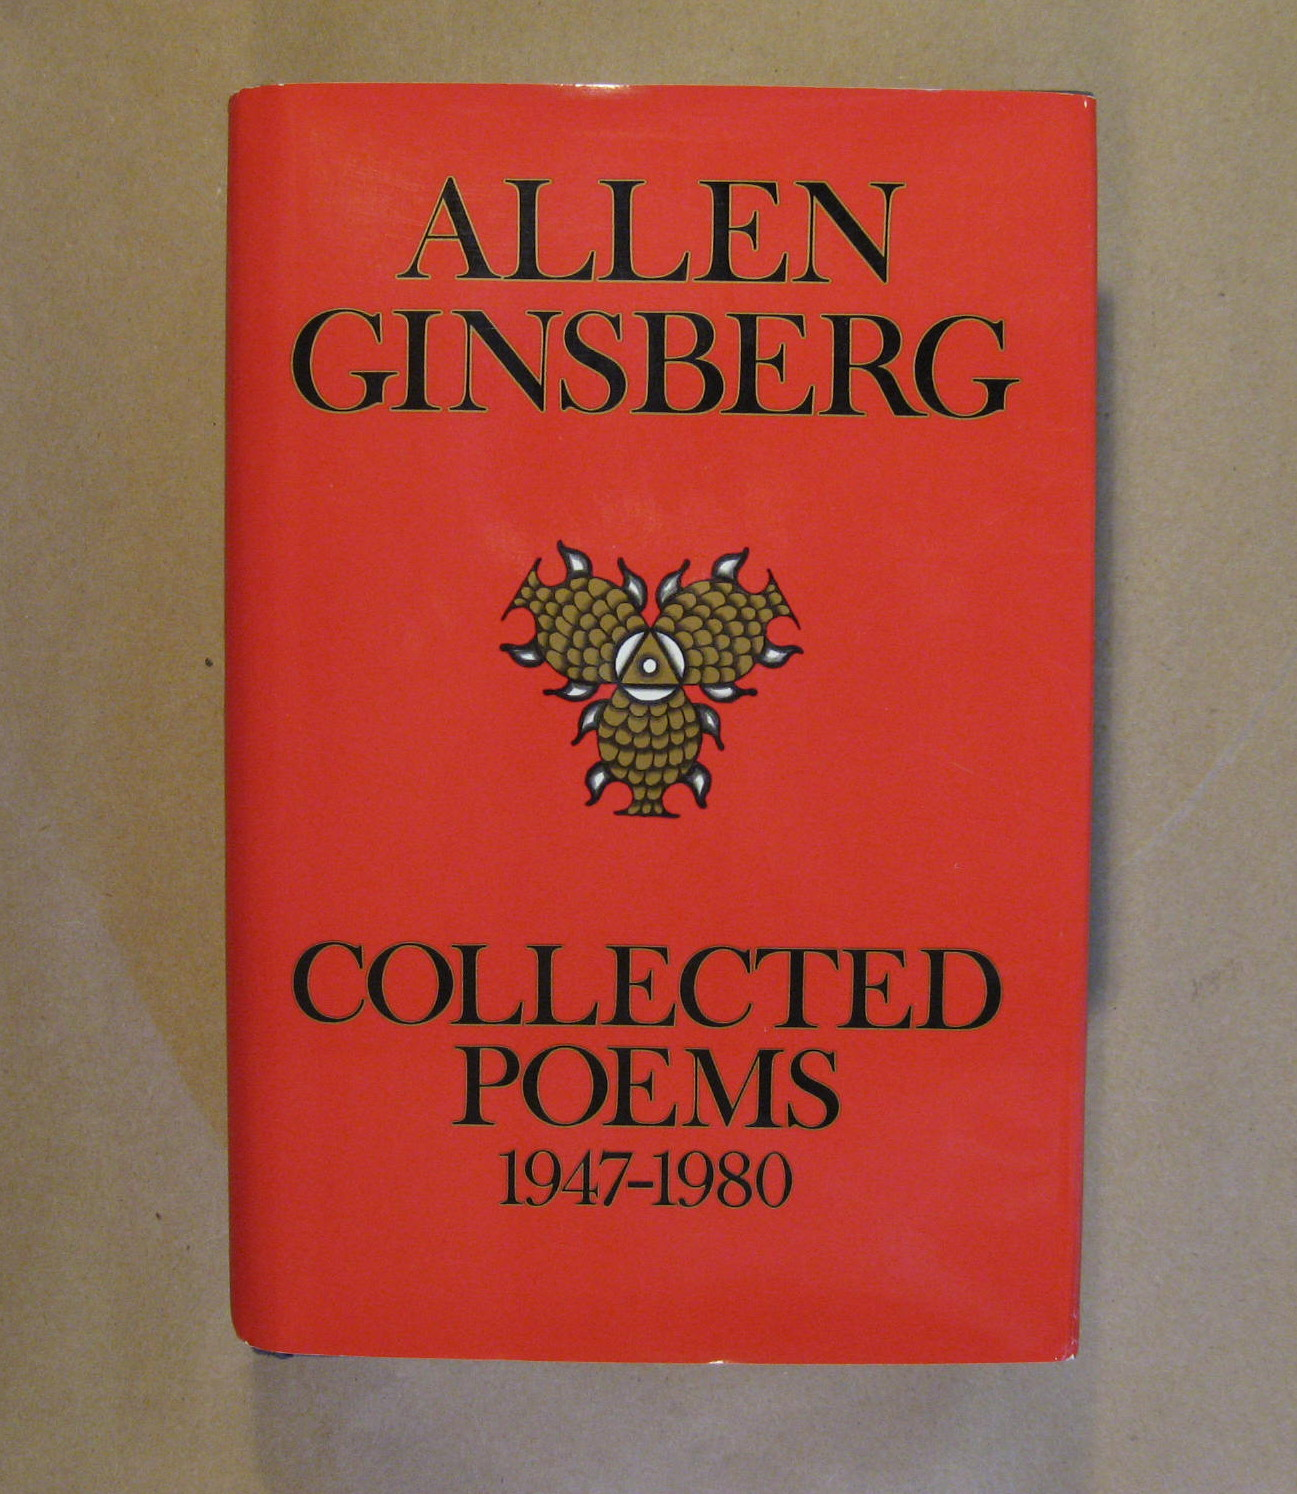 Image result for Allen Ginsberg Collected Poems